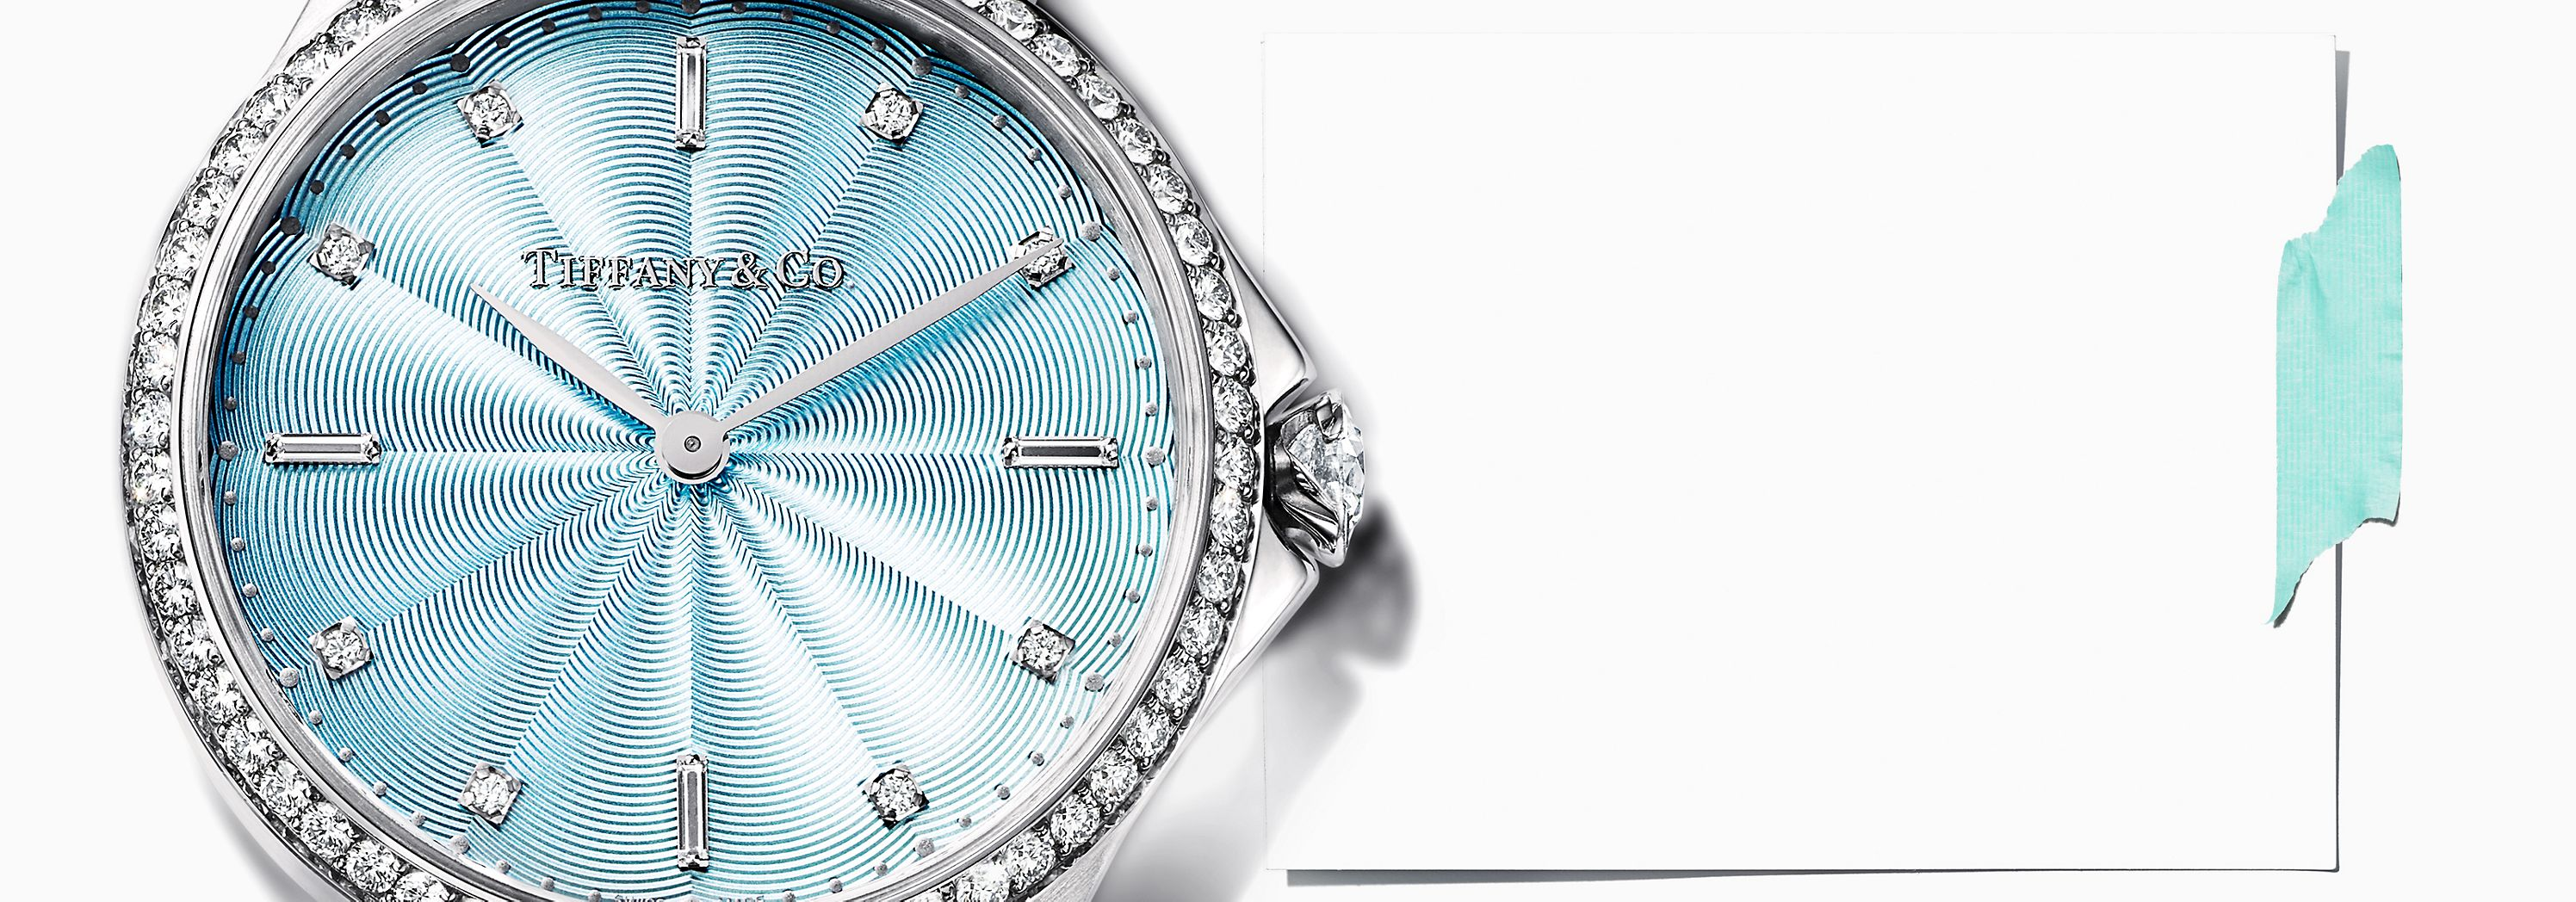 Shop Tiffany Metro Watches